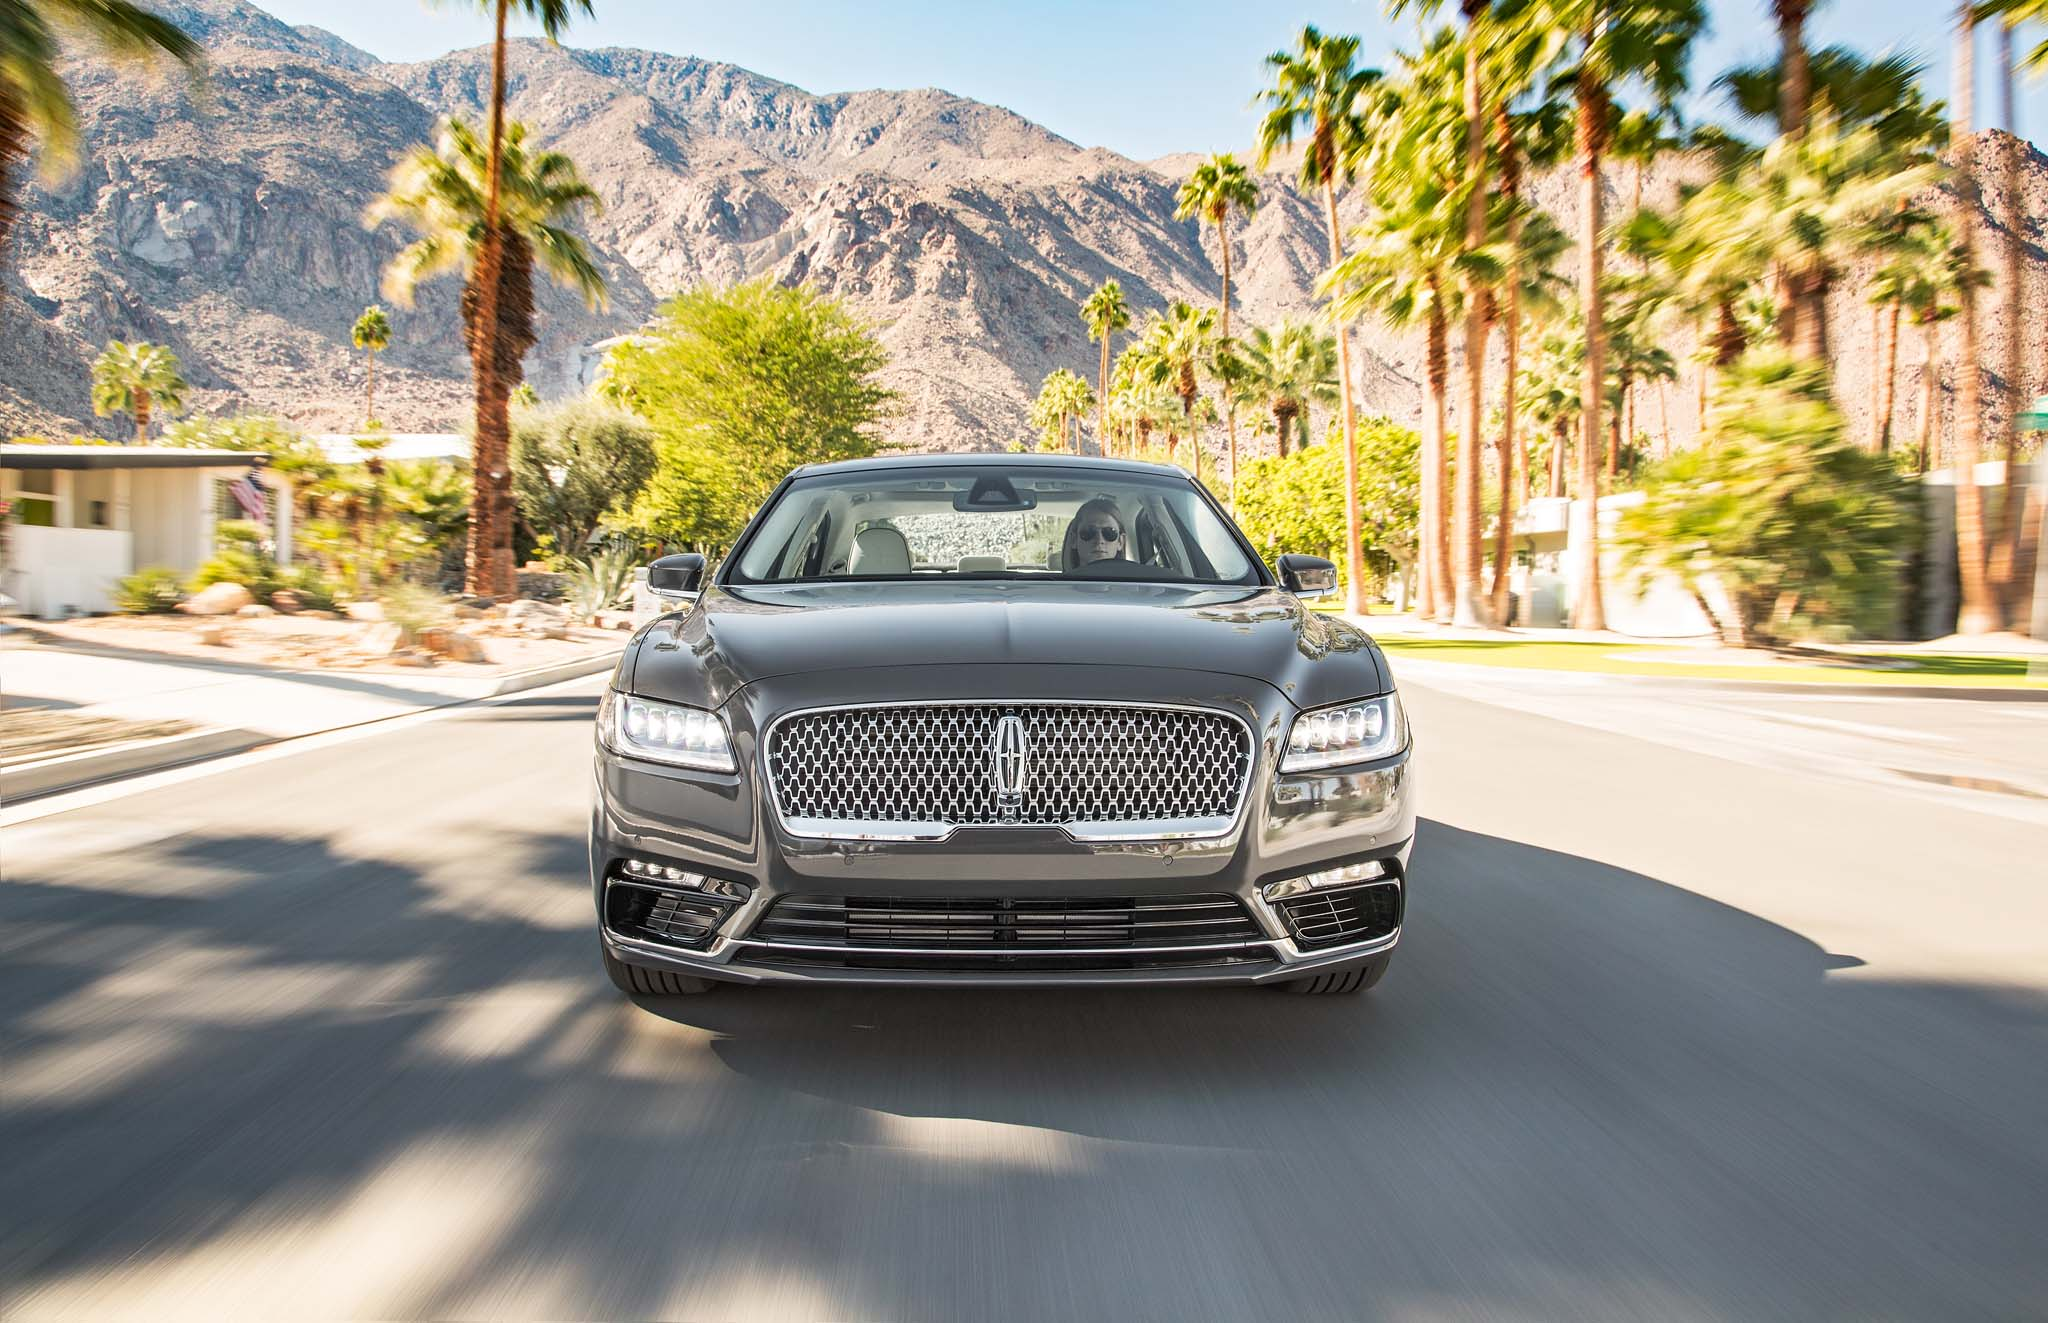 2017 Lincoln Continental Test Drive Front View (Photo 36 of 41)